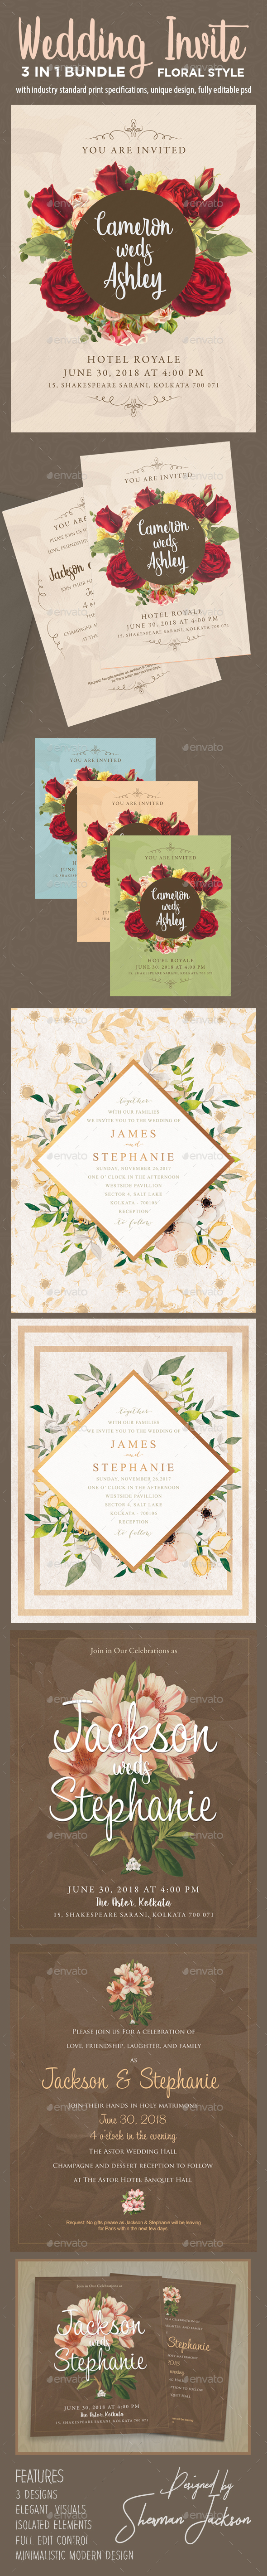 Floral Wedding Invitation Bundle - Weddings Cards & Invites